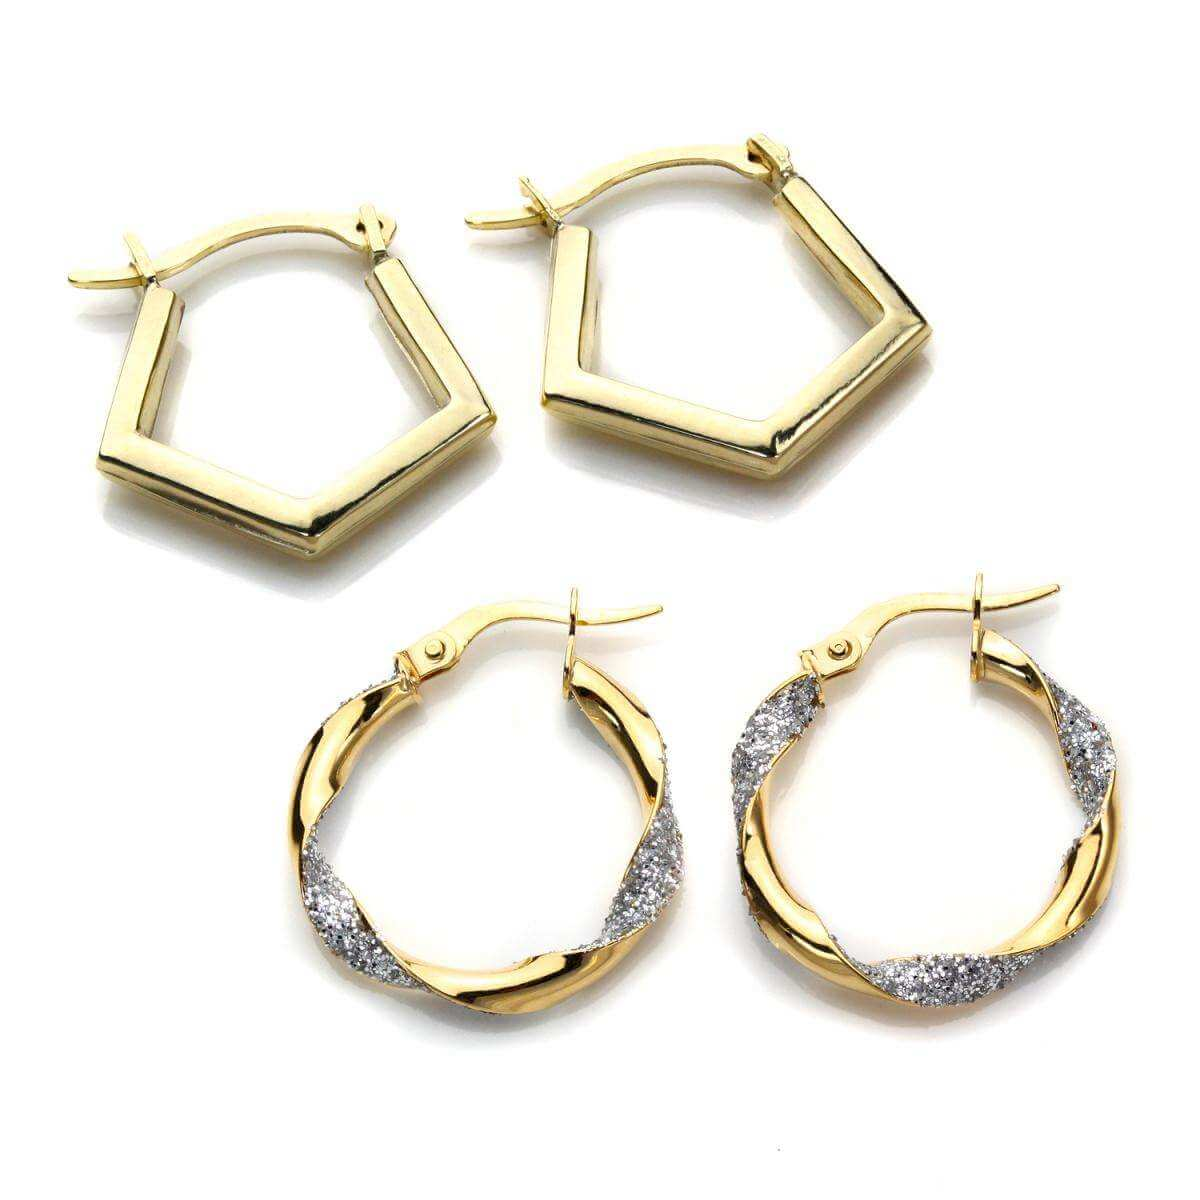 9ct Gold Geometric Hoop Earrings Set